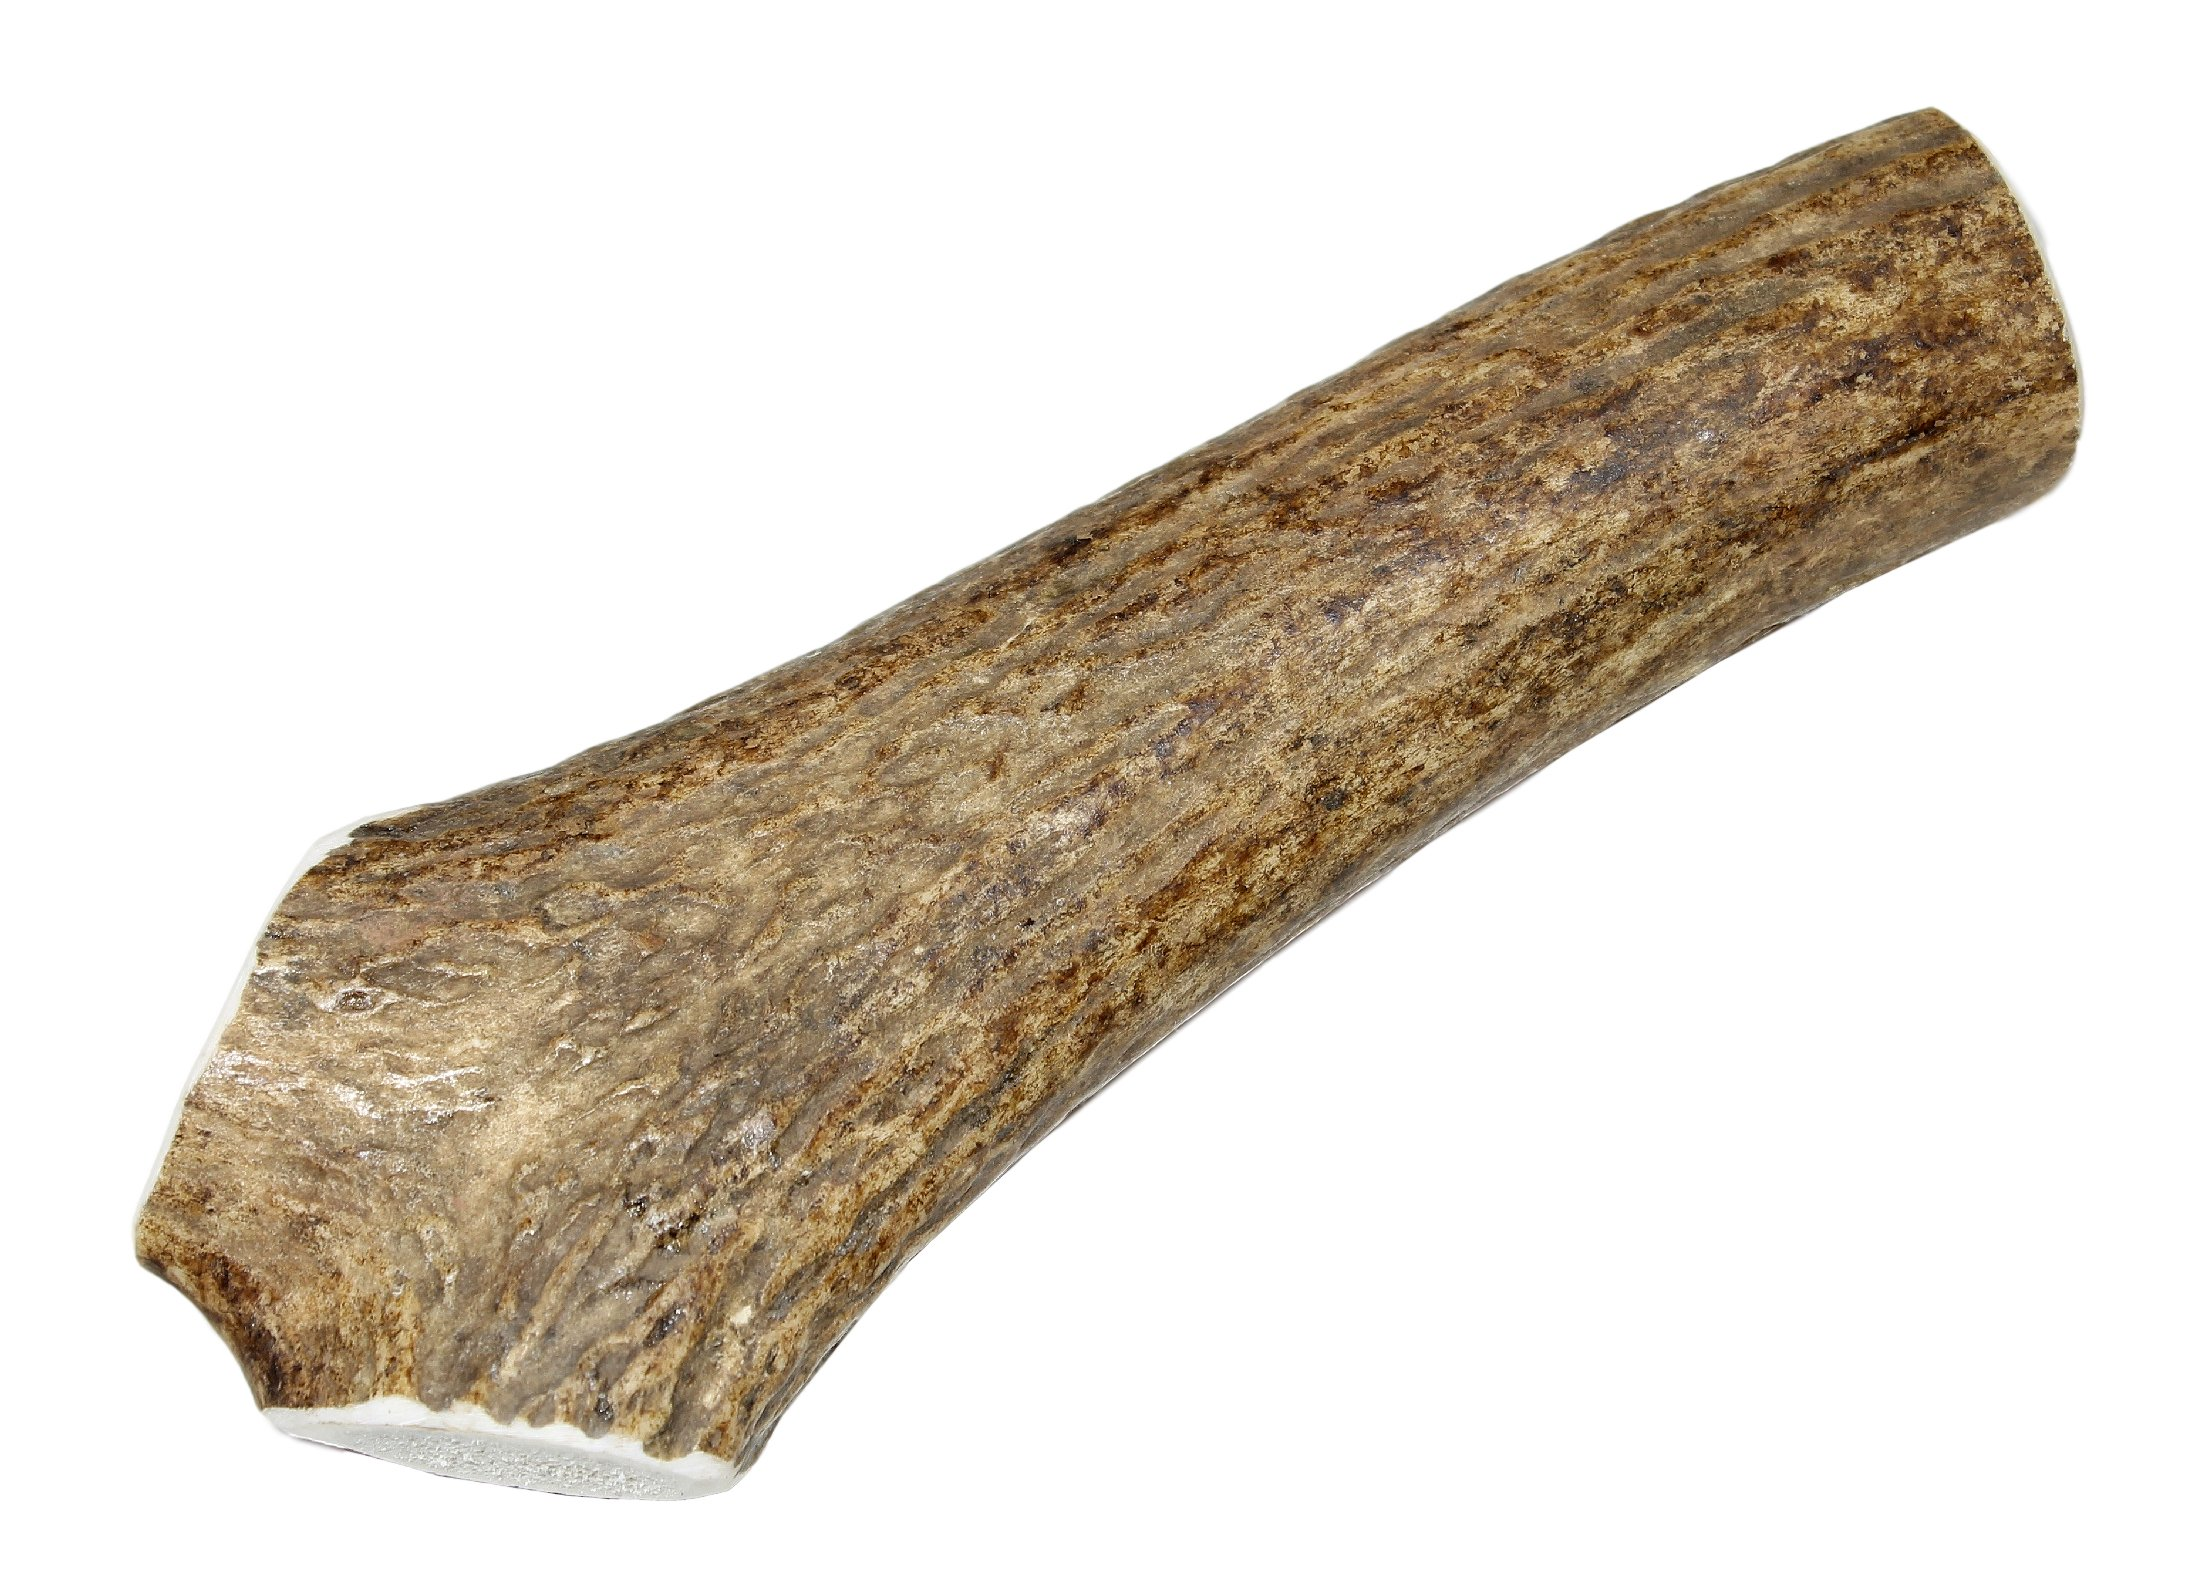 Large, Whole, Single Pack - Grade A Premium Elk Antler Dog Chew for 35 to 65 lb dogs – Naturally shed from wild elk – No Mess, No Odor – Made in the USA by Elkhorn Premium Chews (Image #1)